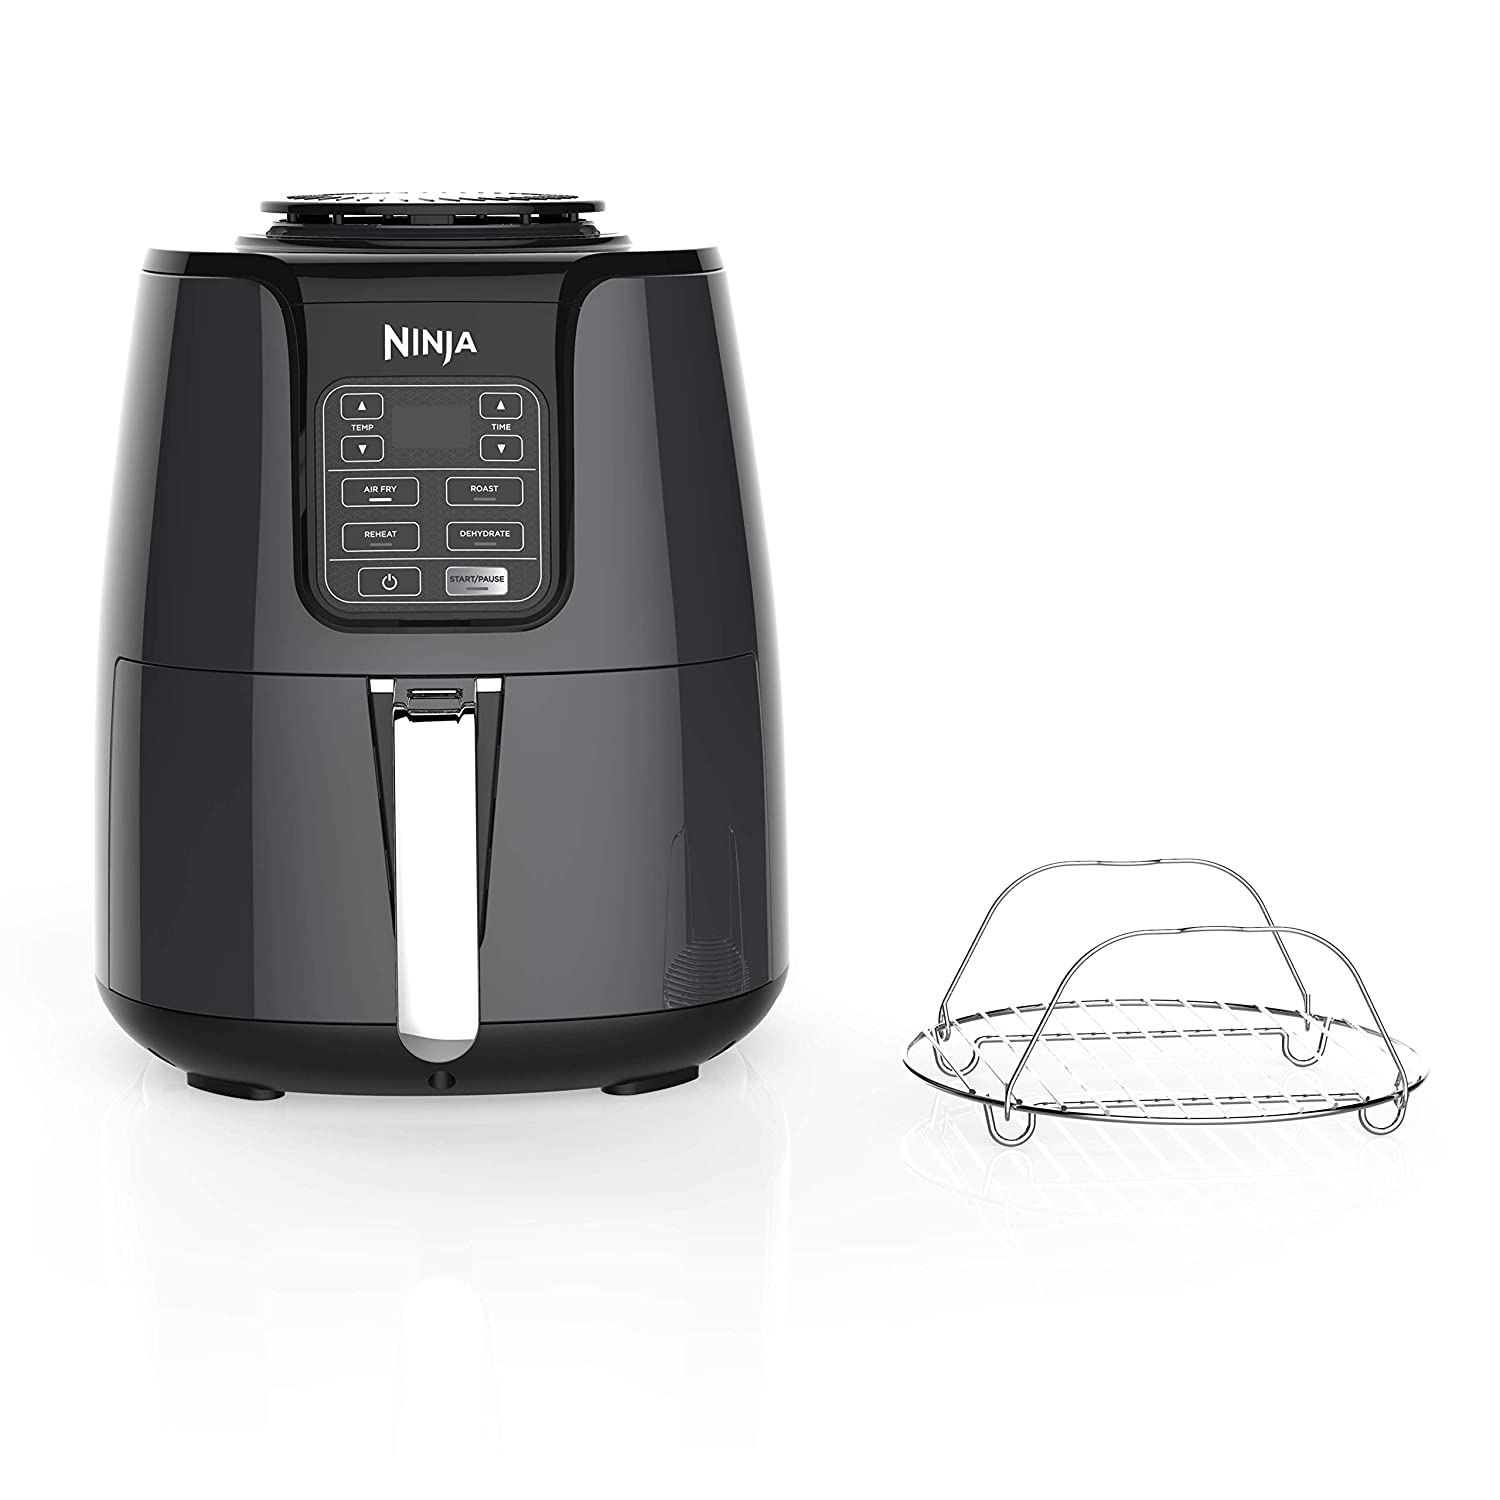 1. Ninja Air Fryer Af101 4 qt. Digital Reviews